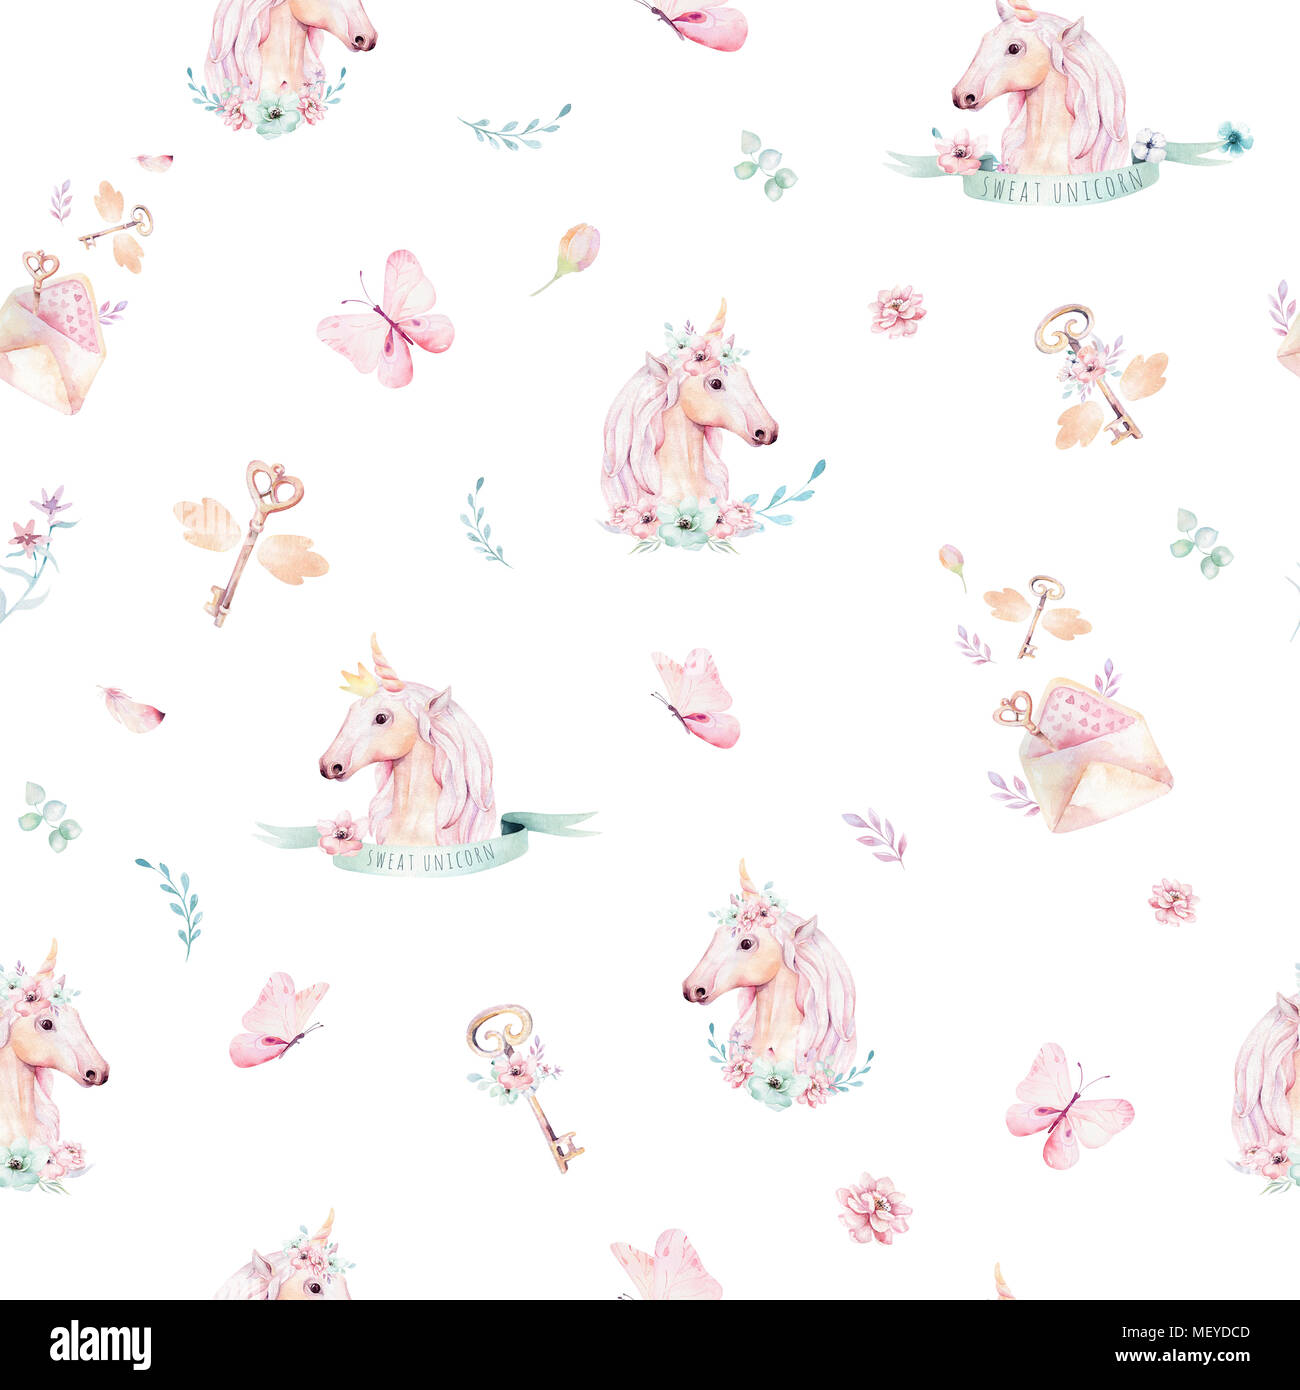 Cute Watercolor Unicorn Seamless Pattern With Flowers Nursery